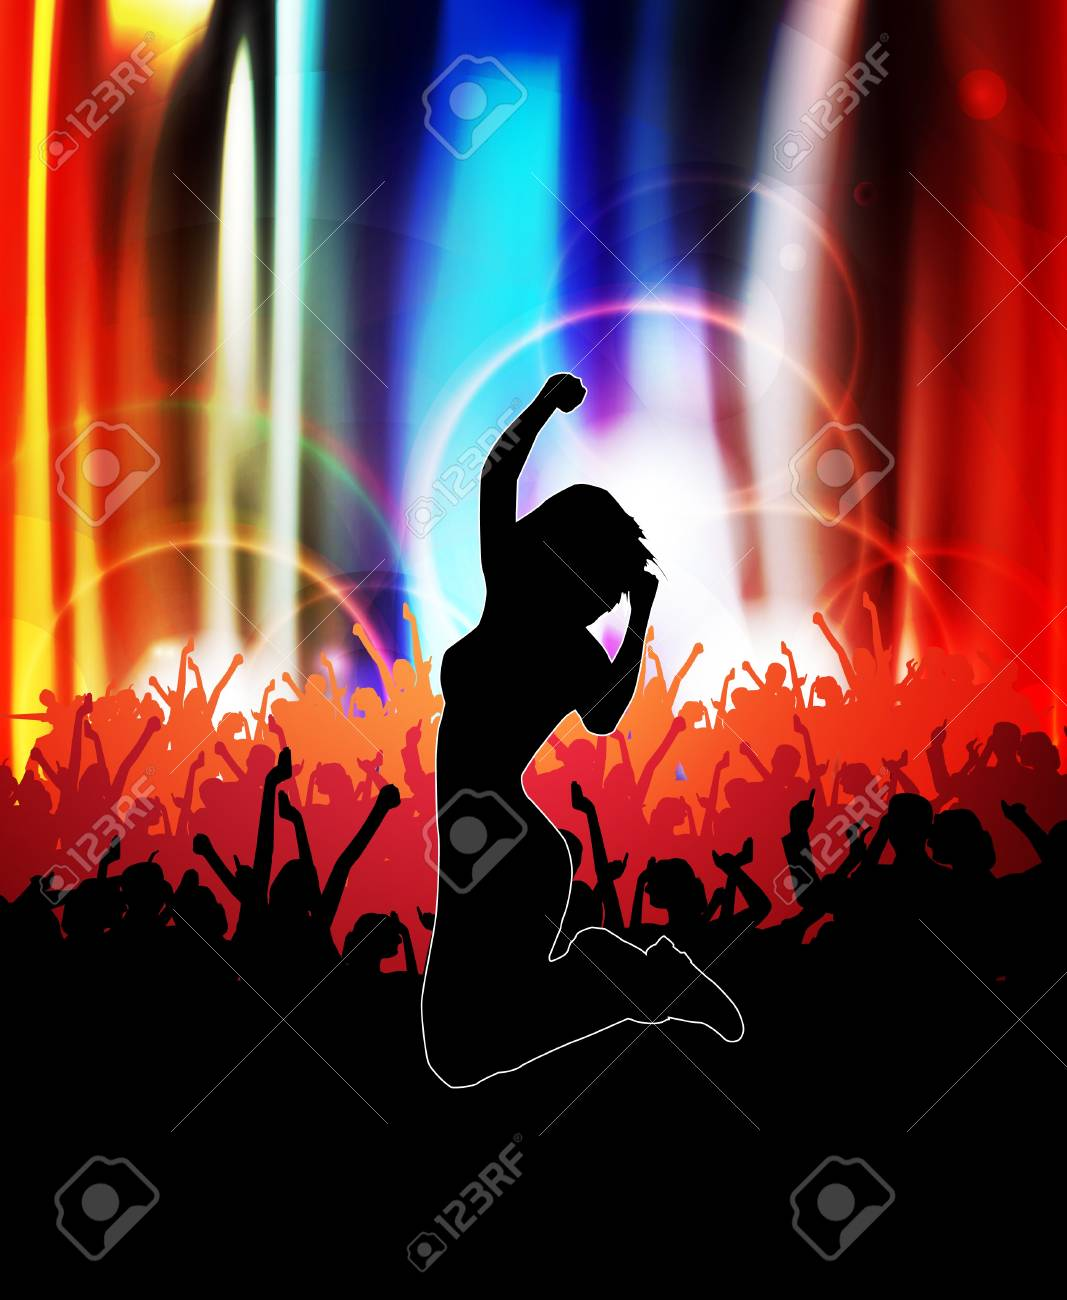 Dancing people   illustration Stock Vector - 14109242